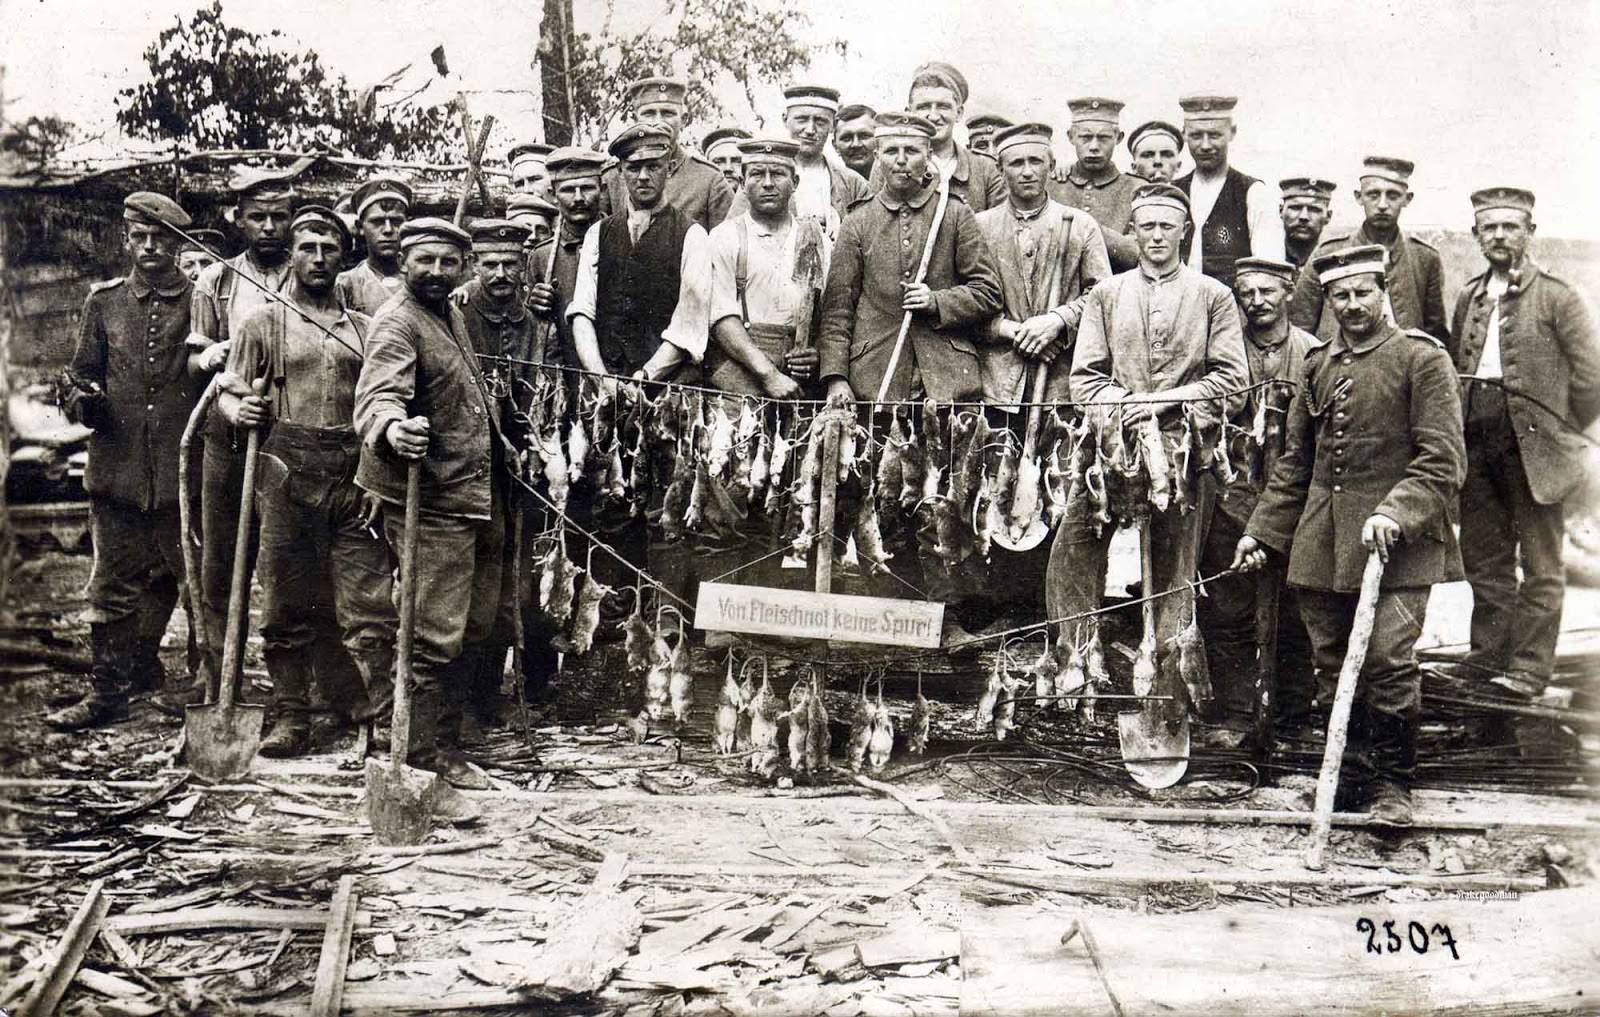 Soldiers posing with the rats, they caught after few hours of hunting. Some of the men are toting shovels and improvised clubs, undoubtedly the weapons of choice in this particular 'Rattenjagd'.